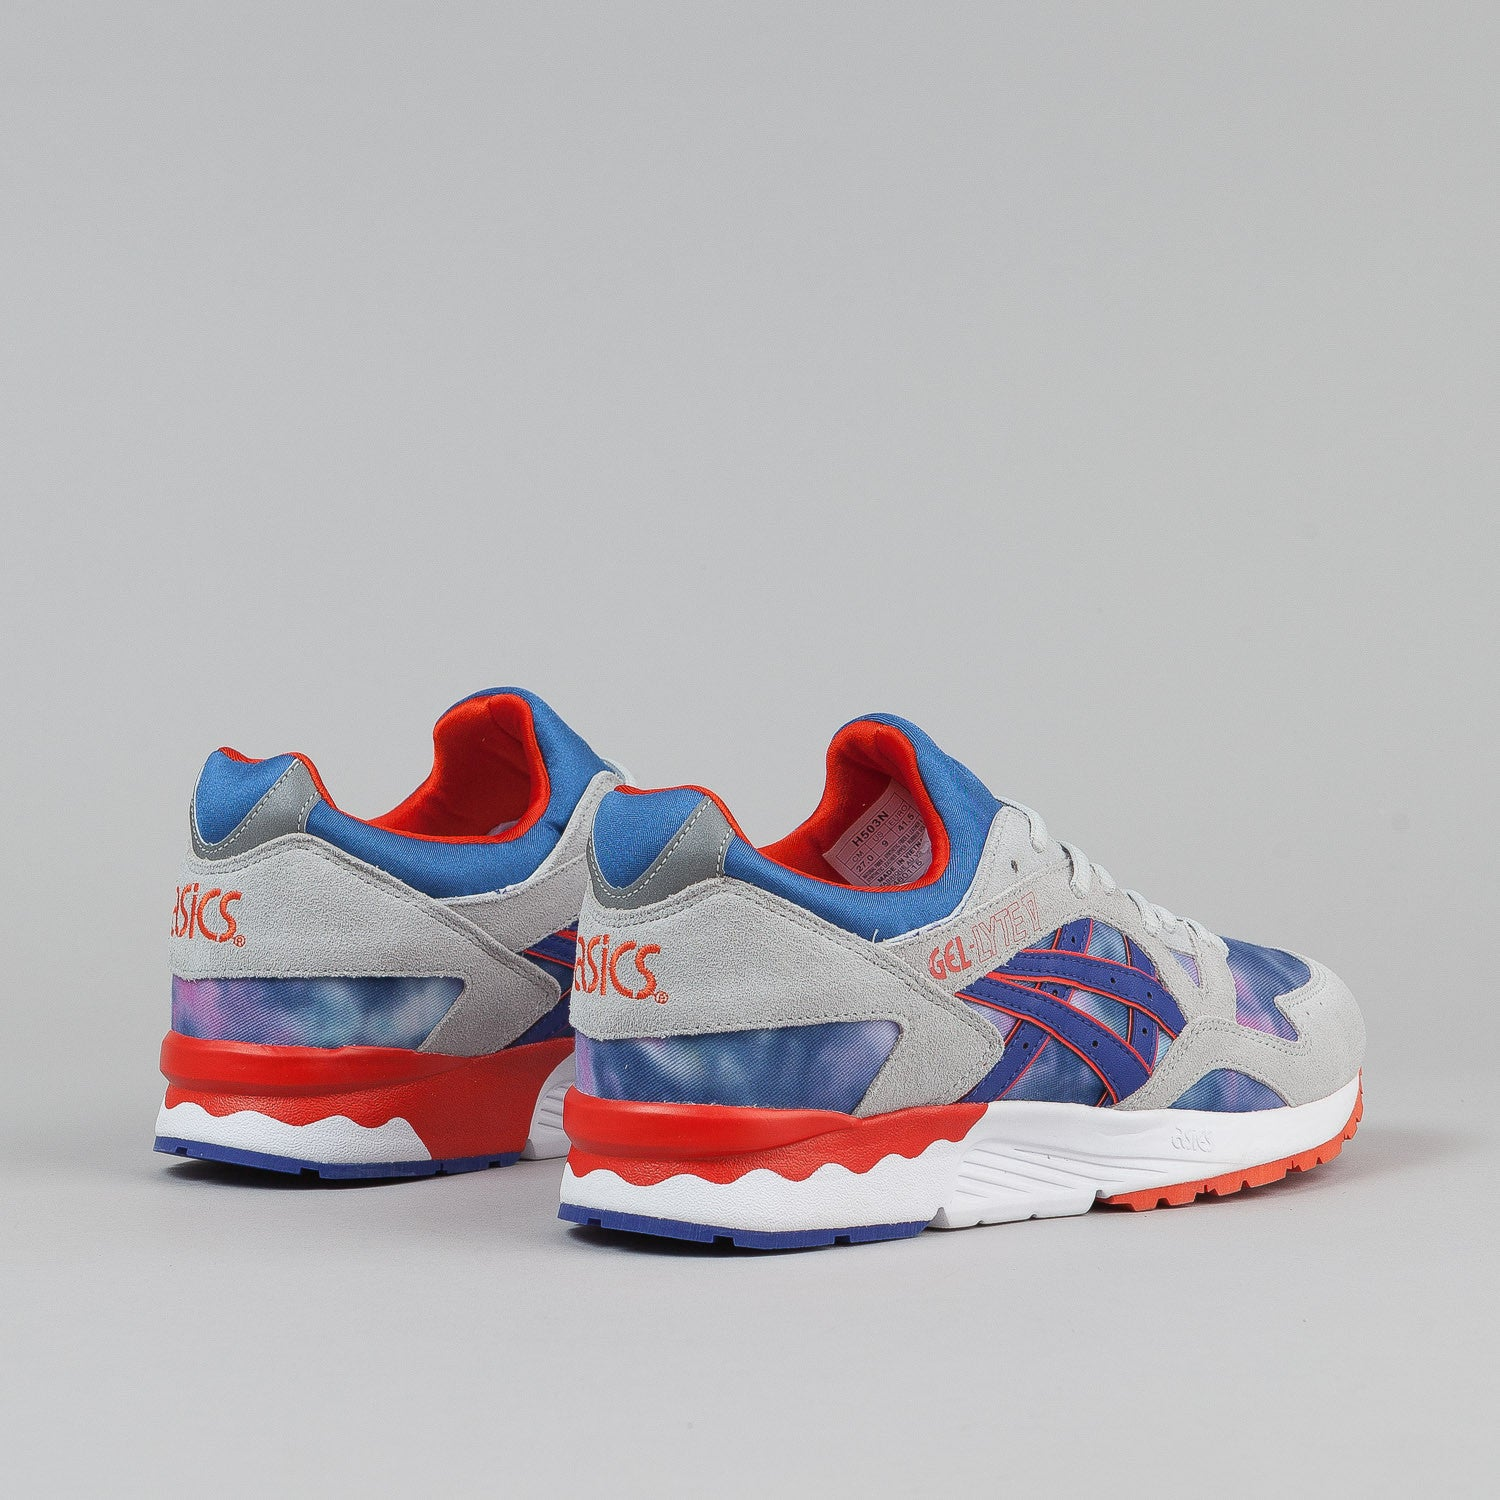 Asics Gel Lyte V Shoes - Tie Dye / Dark Blue